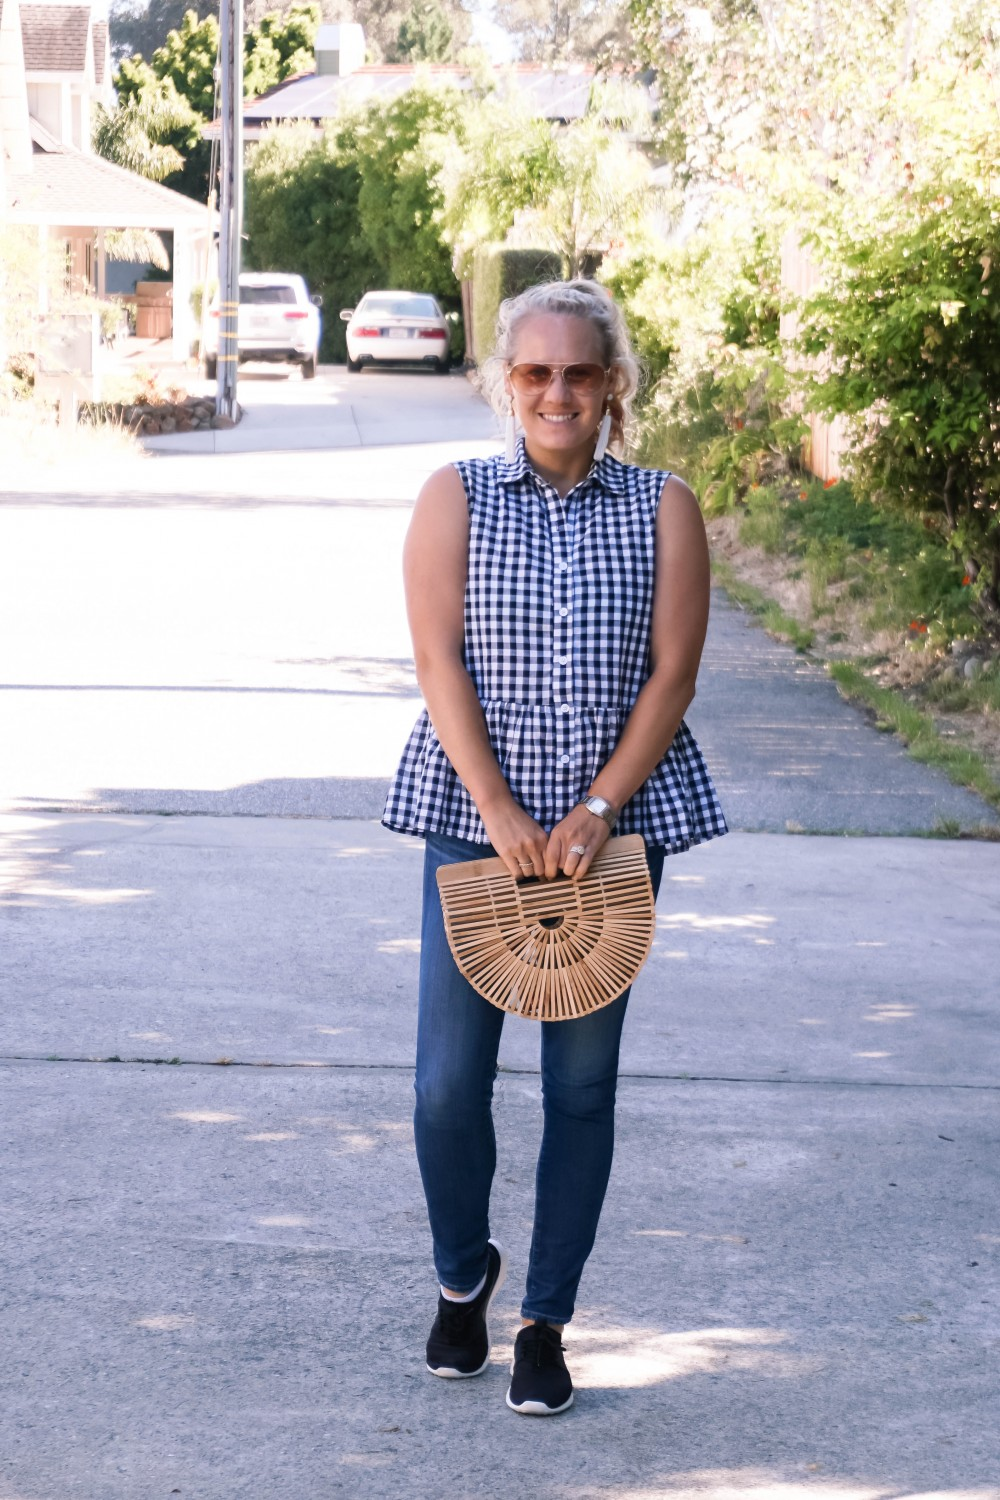 Blogger Off Duty-Daily Outfit Series-Have Need Want-Romwe Gingham Bow Top-Gingham Top-Summer Style-Mom Style-Stylish Moms-Outfit Inspiration 6